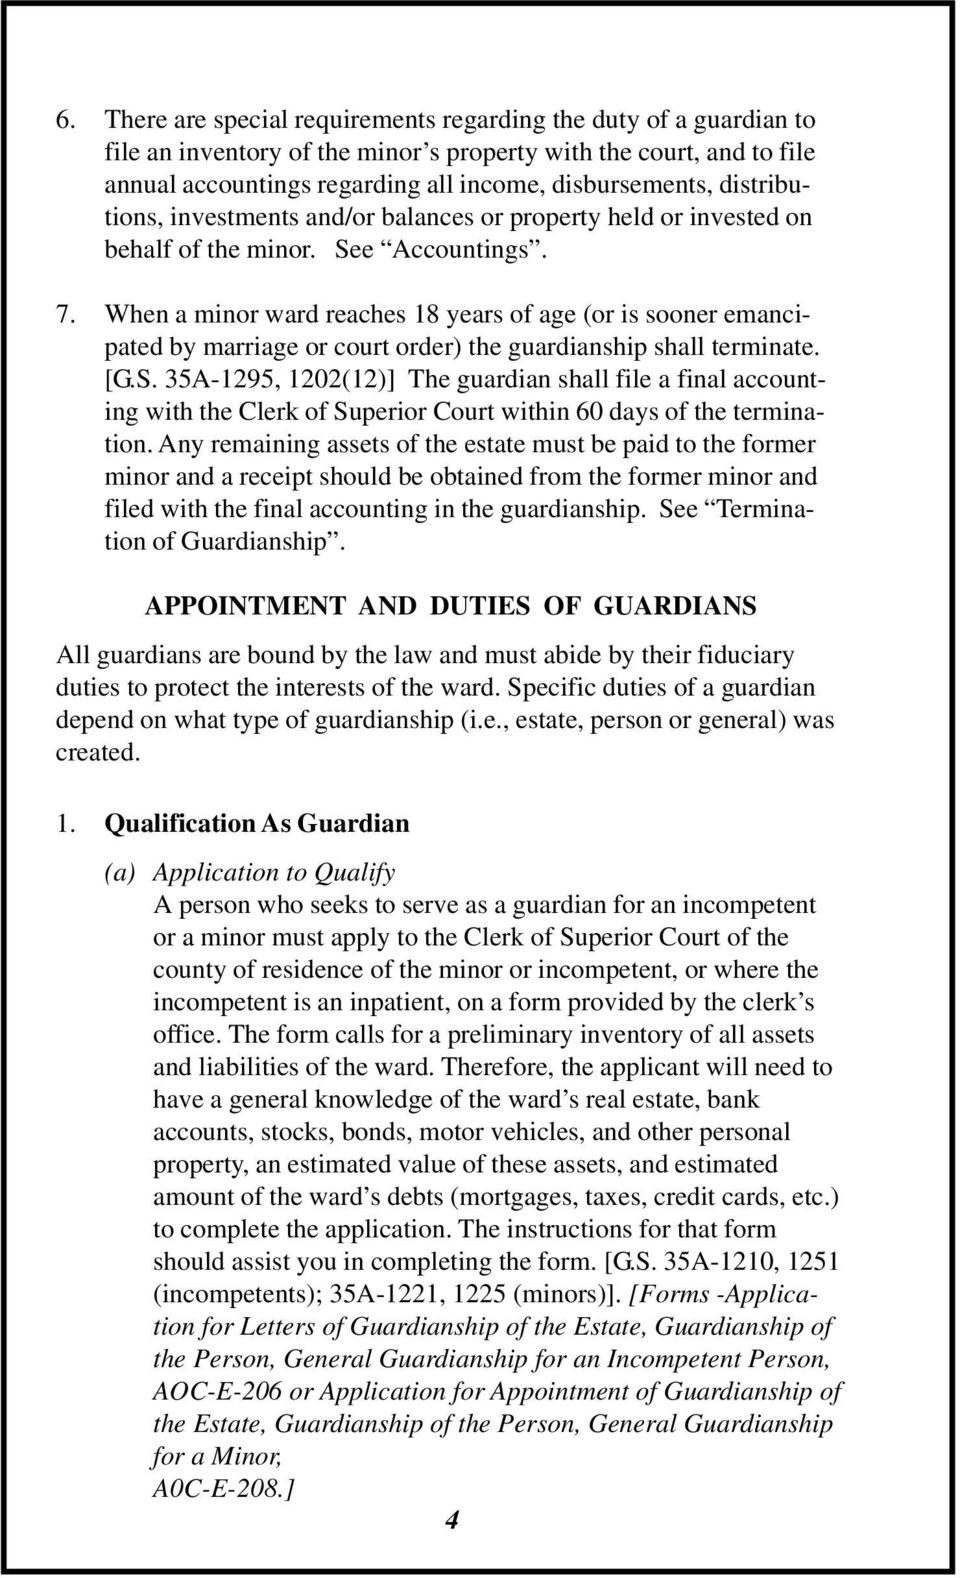 When a minor ward reaches 18 years of age (or is sooner emancipated by marriage or court order) the guardianship shall terminate. [G.S.